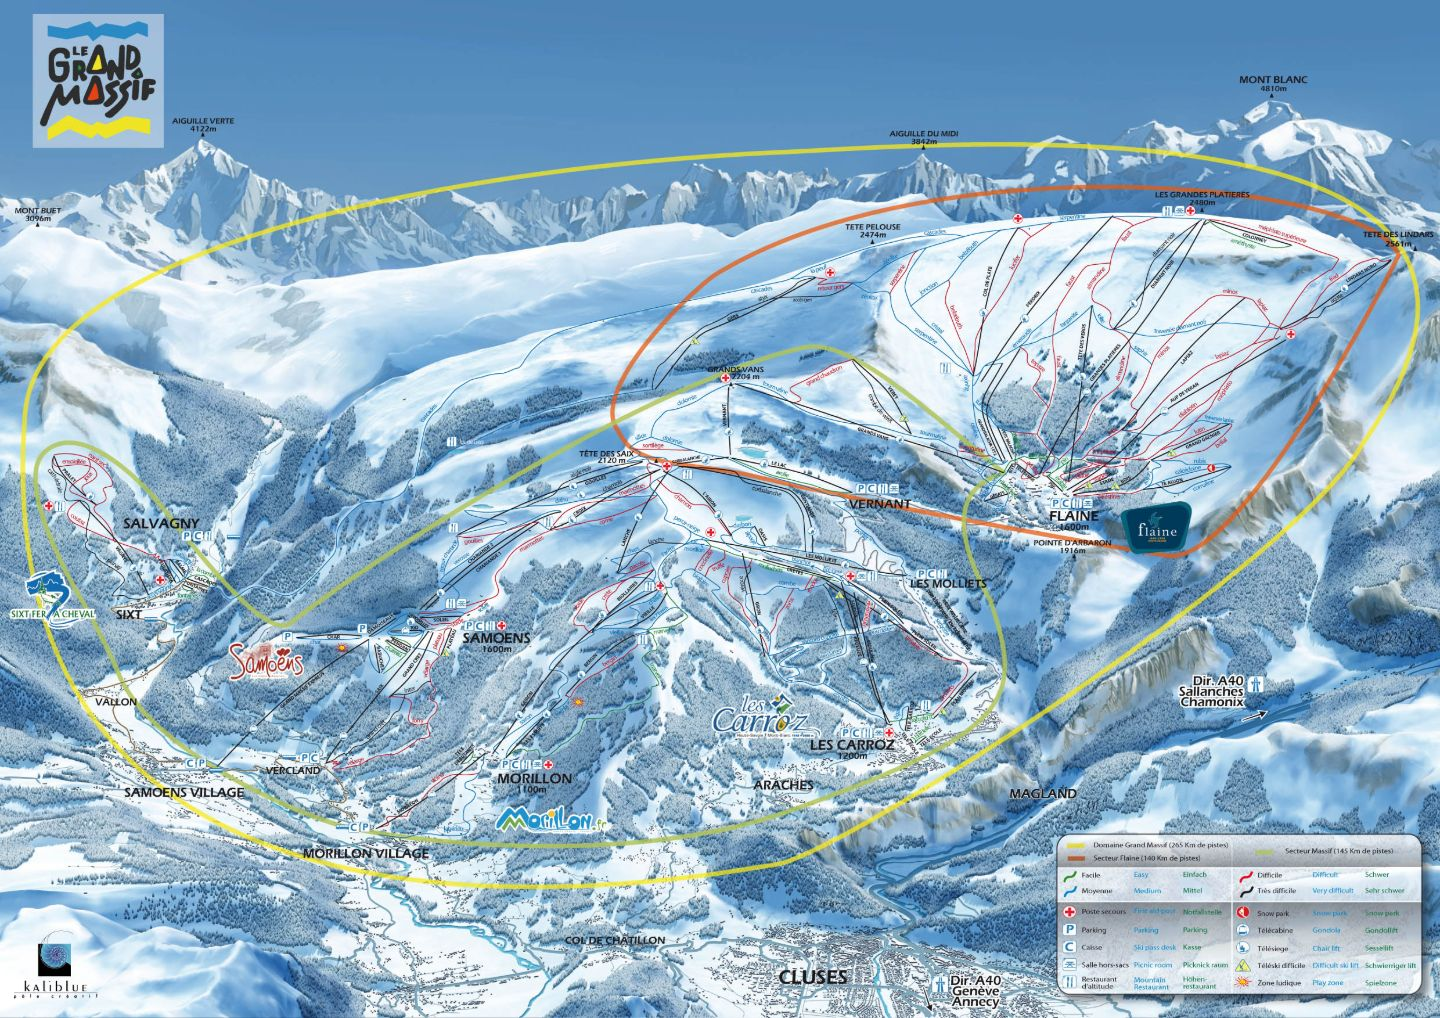 Grand Massif Piste Map Piste